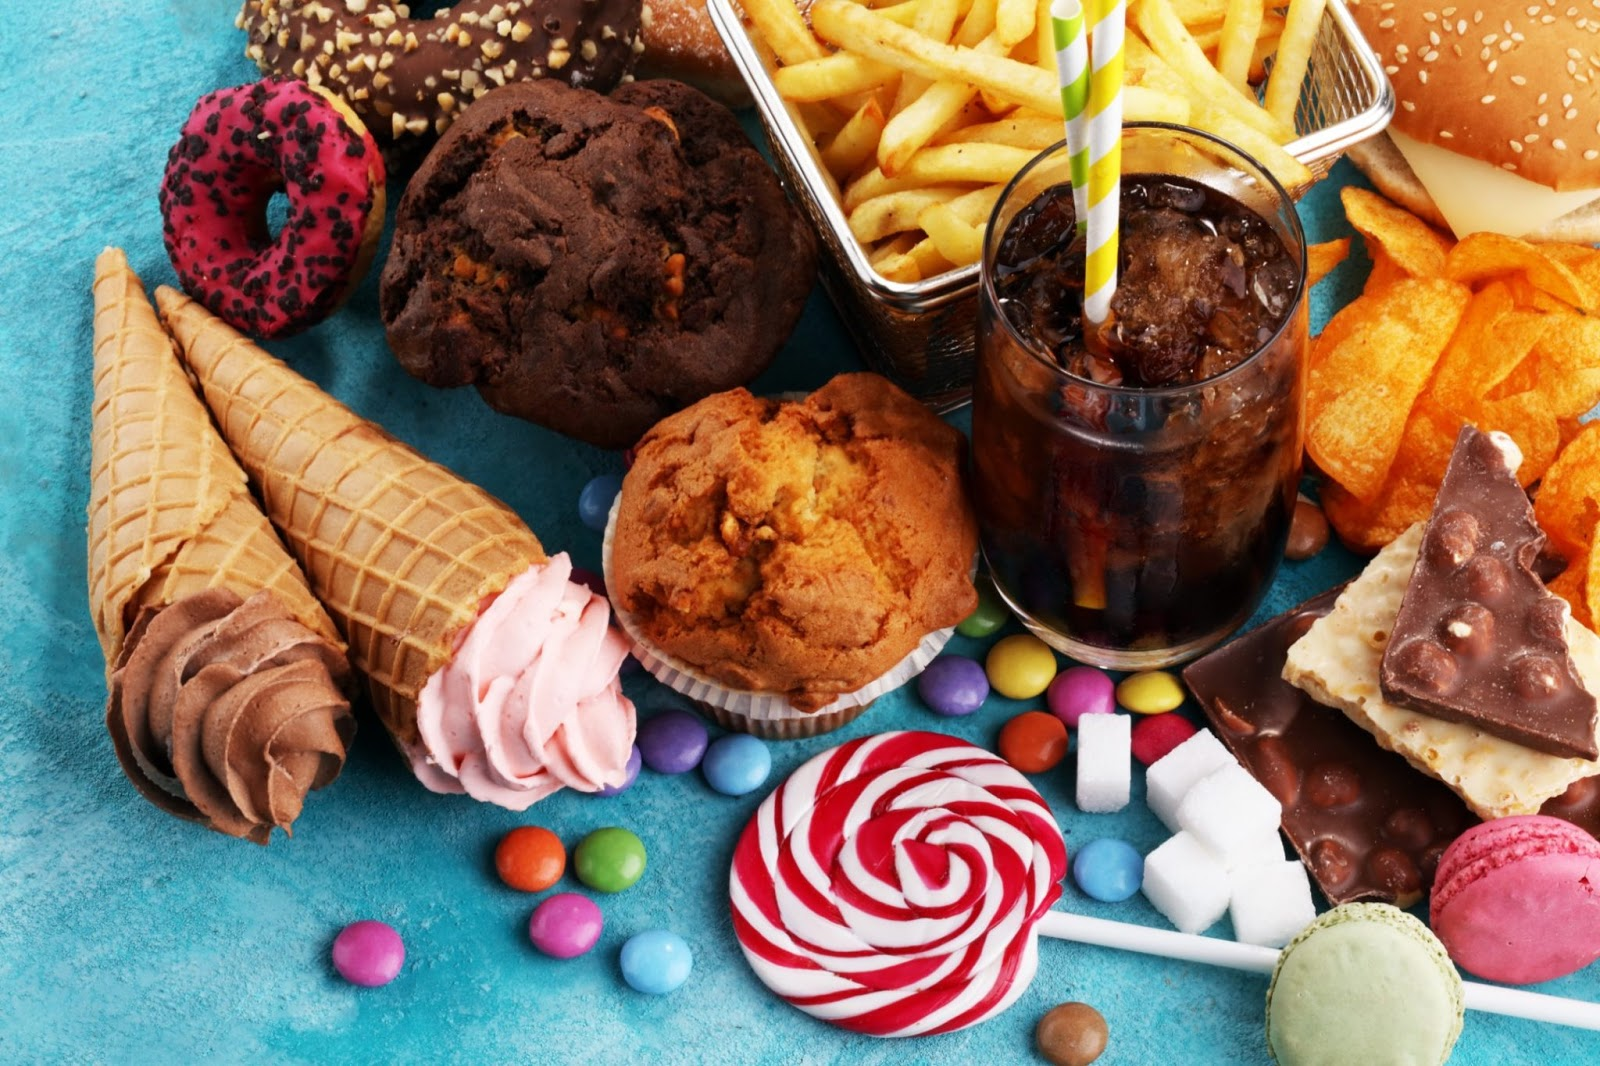 Unhealthy foods like muffins, hard candy, fries, and carbonated drinks.